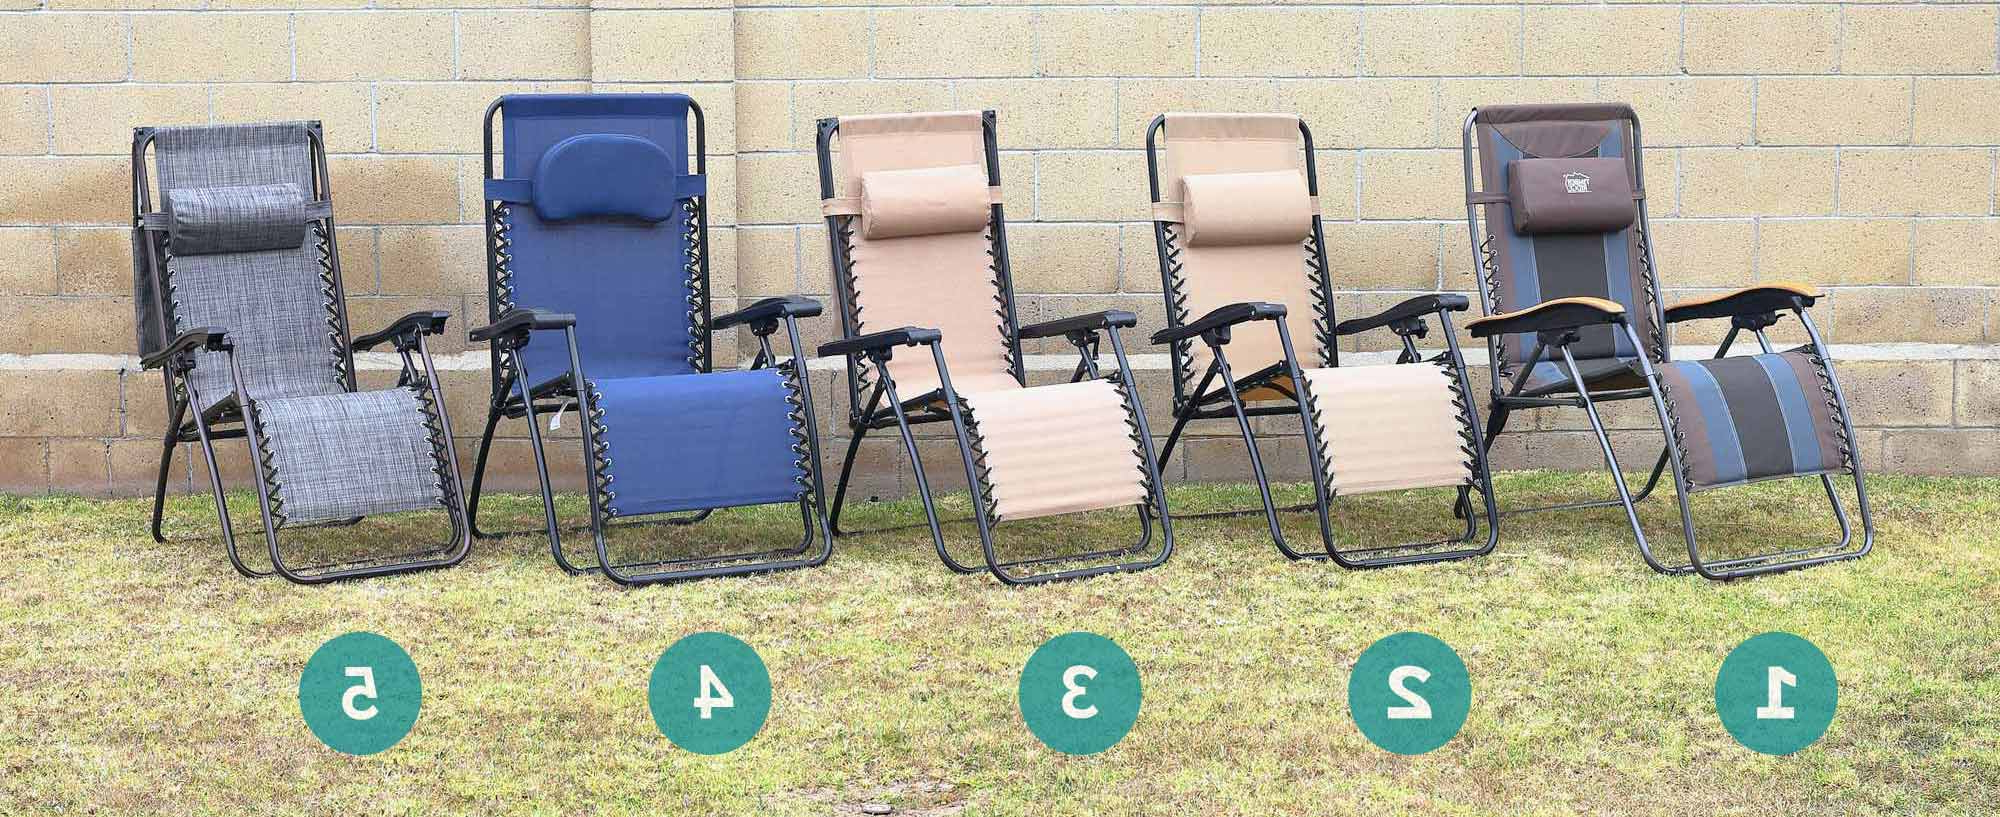 Newest Oversize Wider Armrest Padded Lounge Chairs Regarding The Best Zero Gravity Chair Of 2019 – Your Best Digs (View 18 of 25)